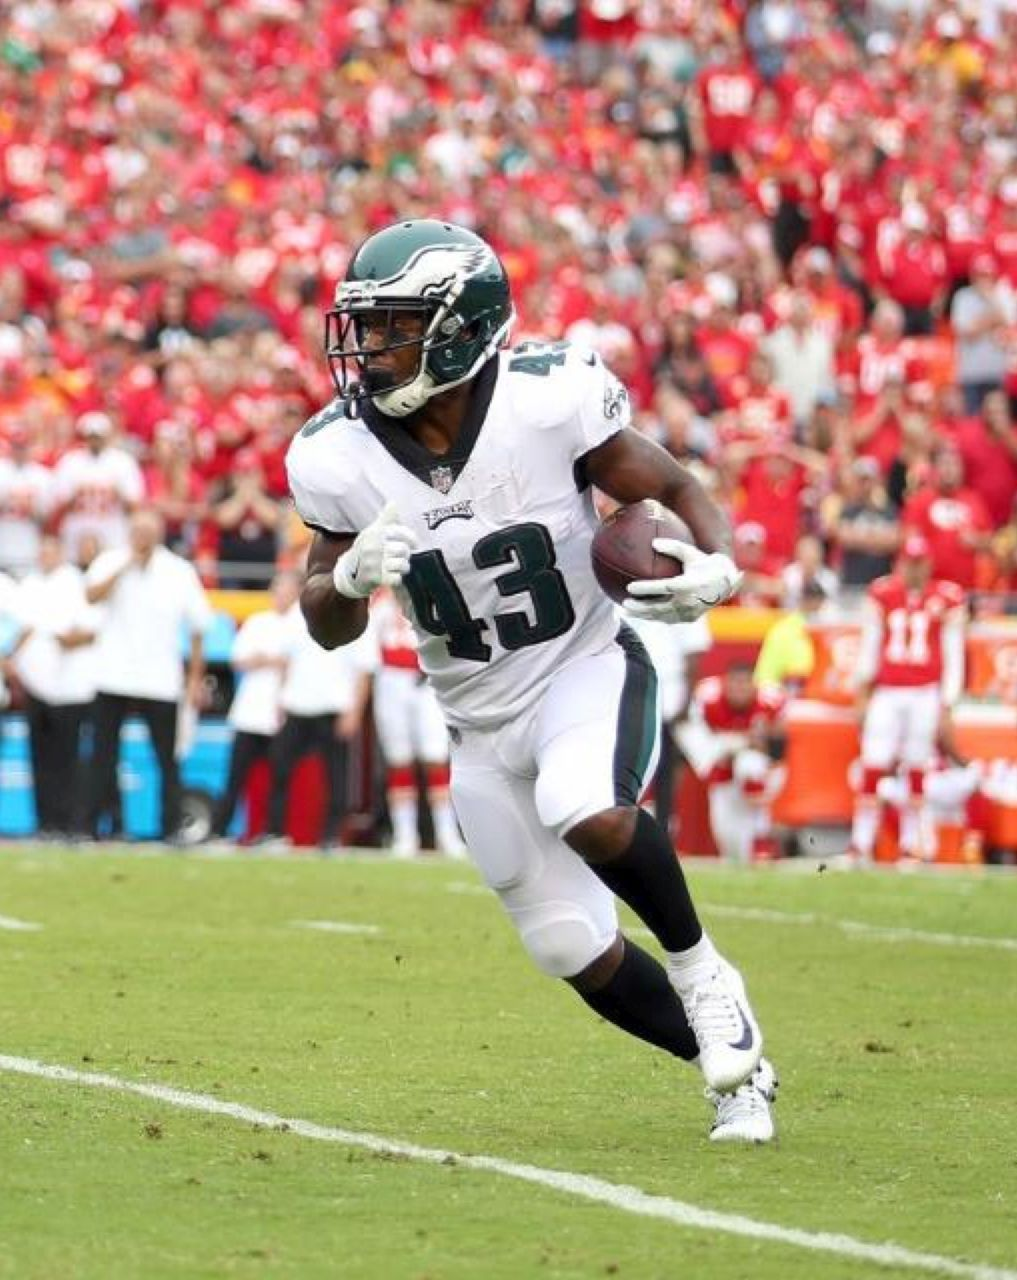 Darren Sproles career in jeopardy after ACL & arm injury